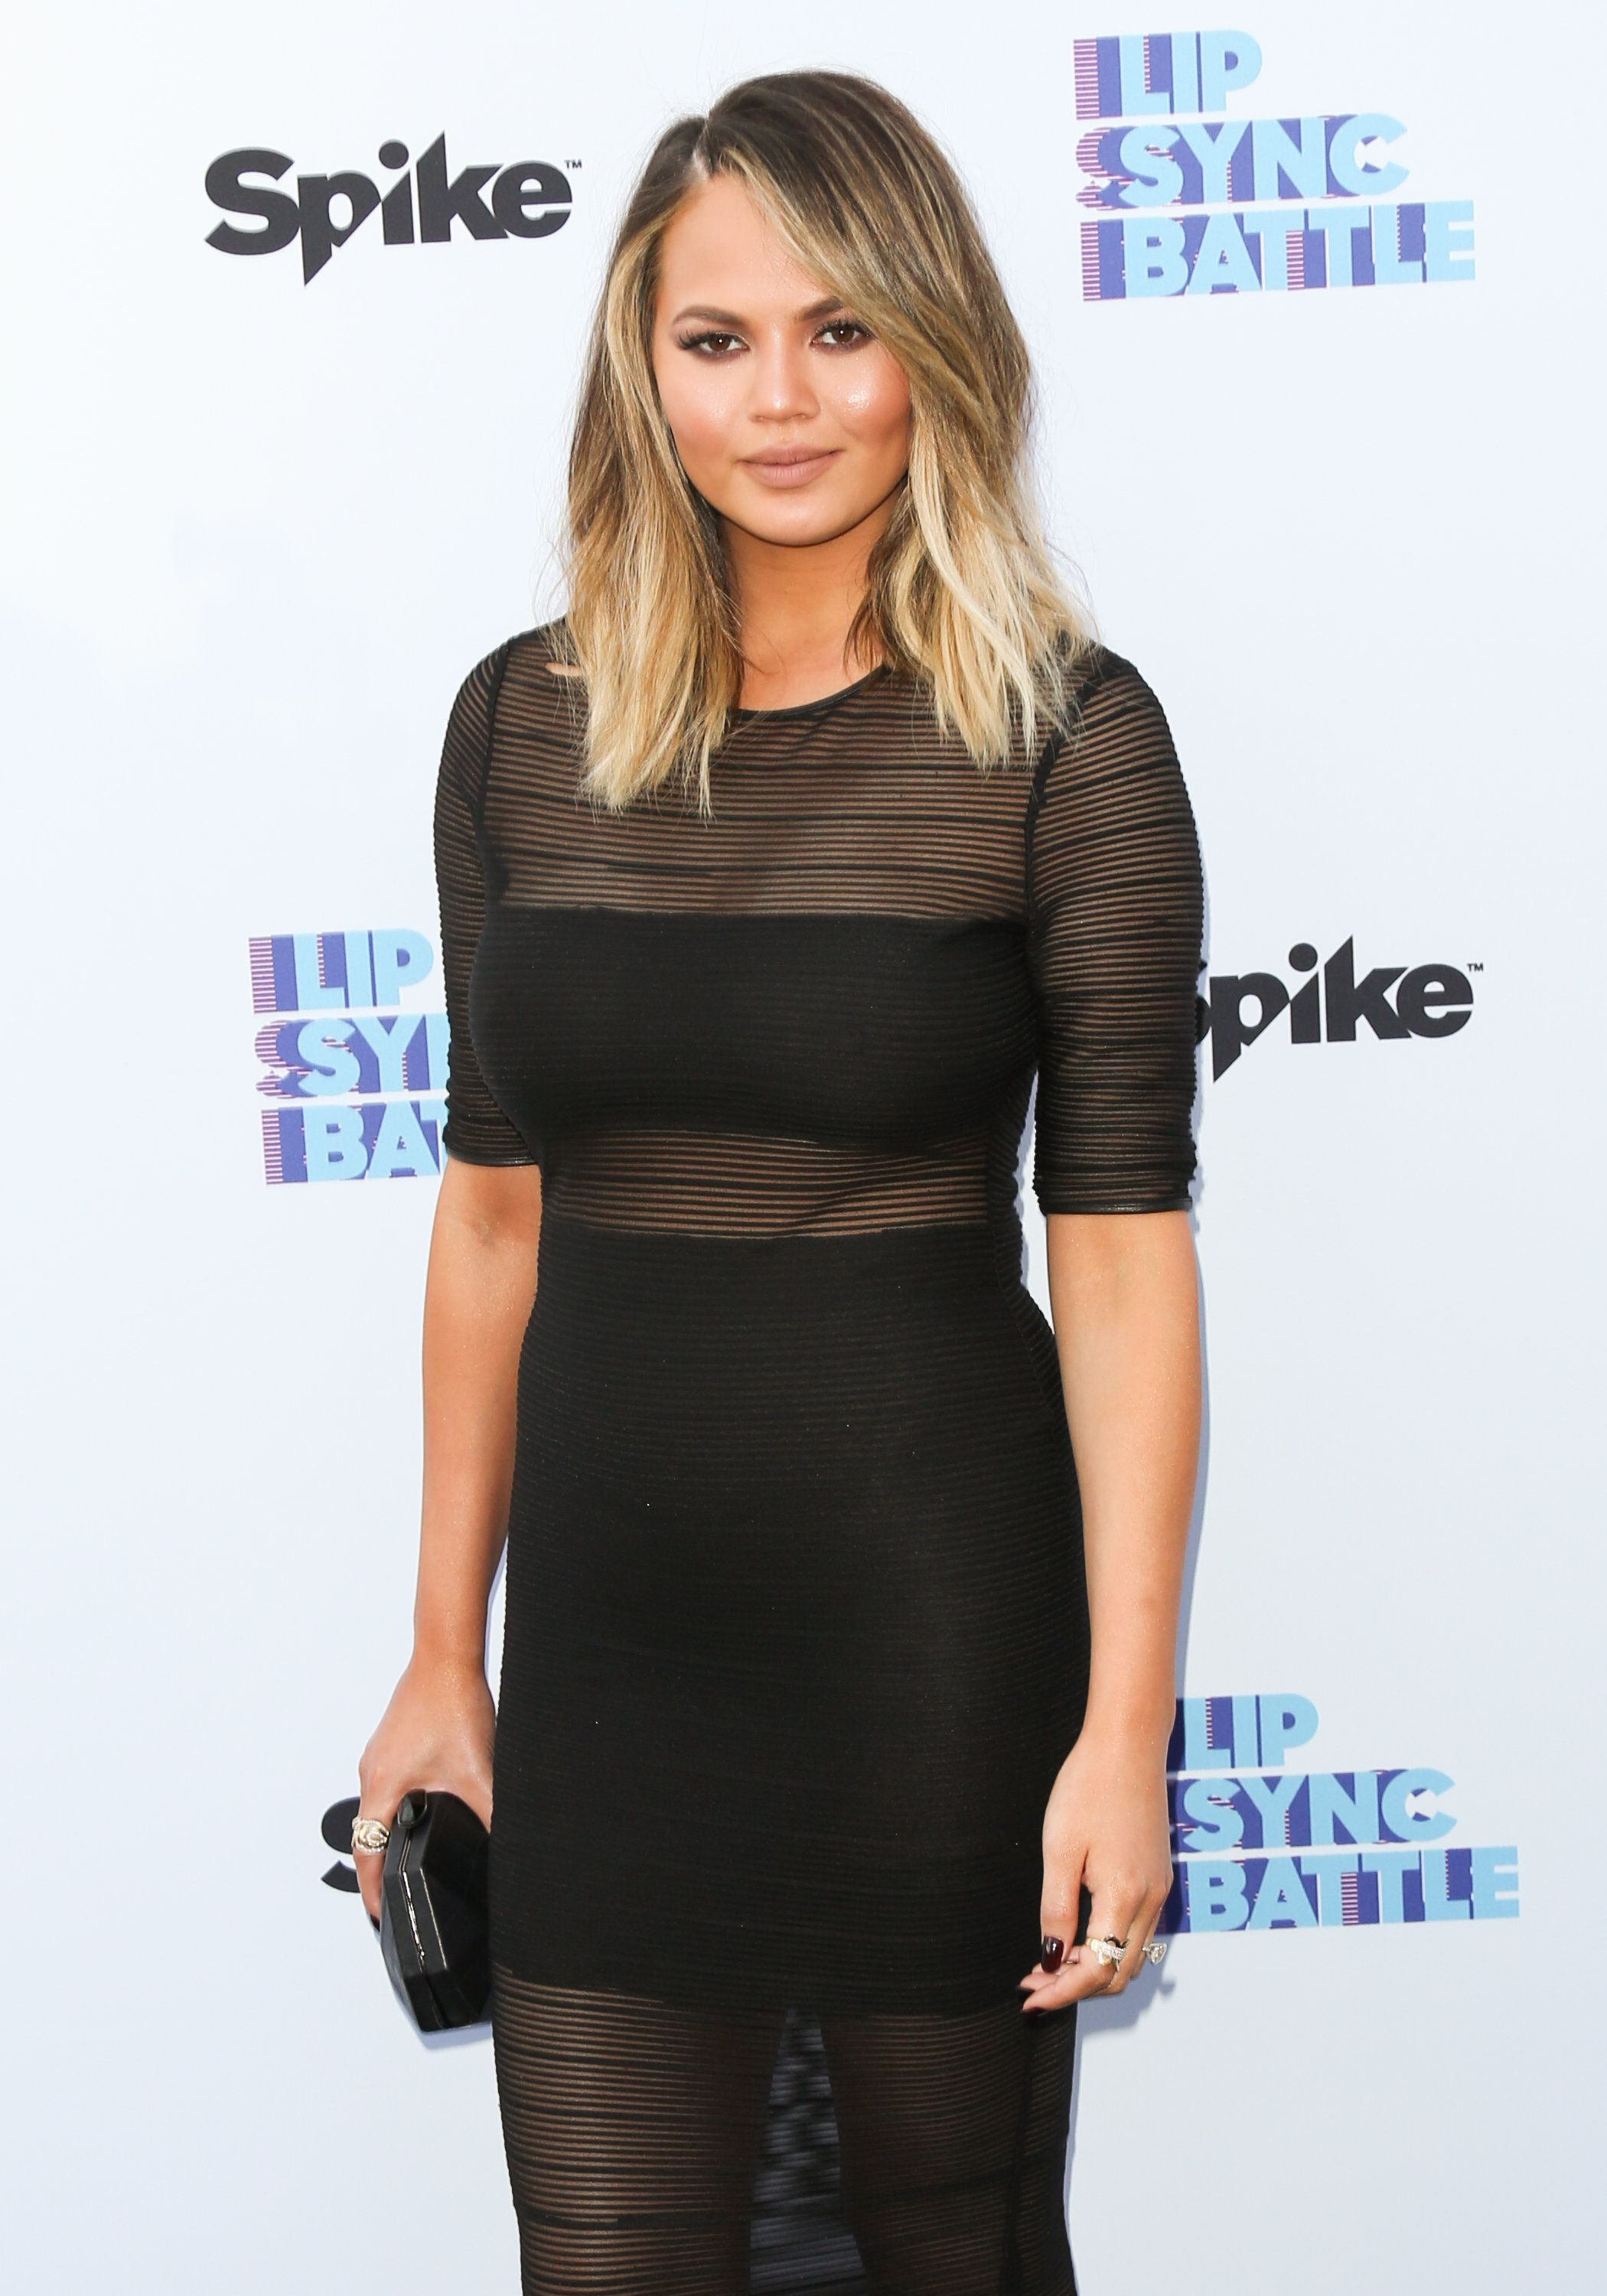 NORTH HOLLYWOOD, CA - JUNE 14:  Fashion Model / TV Personality Chrissy Teigen attends the screening of Spike's 'Lip Sync Battle' on June 14, 2016 in North Hollywood, California.  (Photo by Paul Archuleta/FilmMagic)